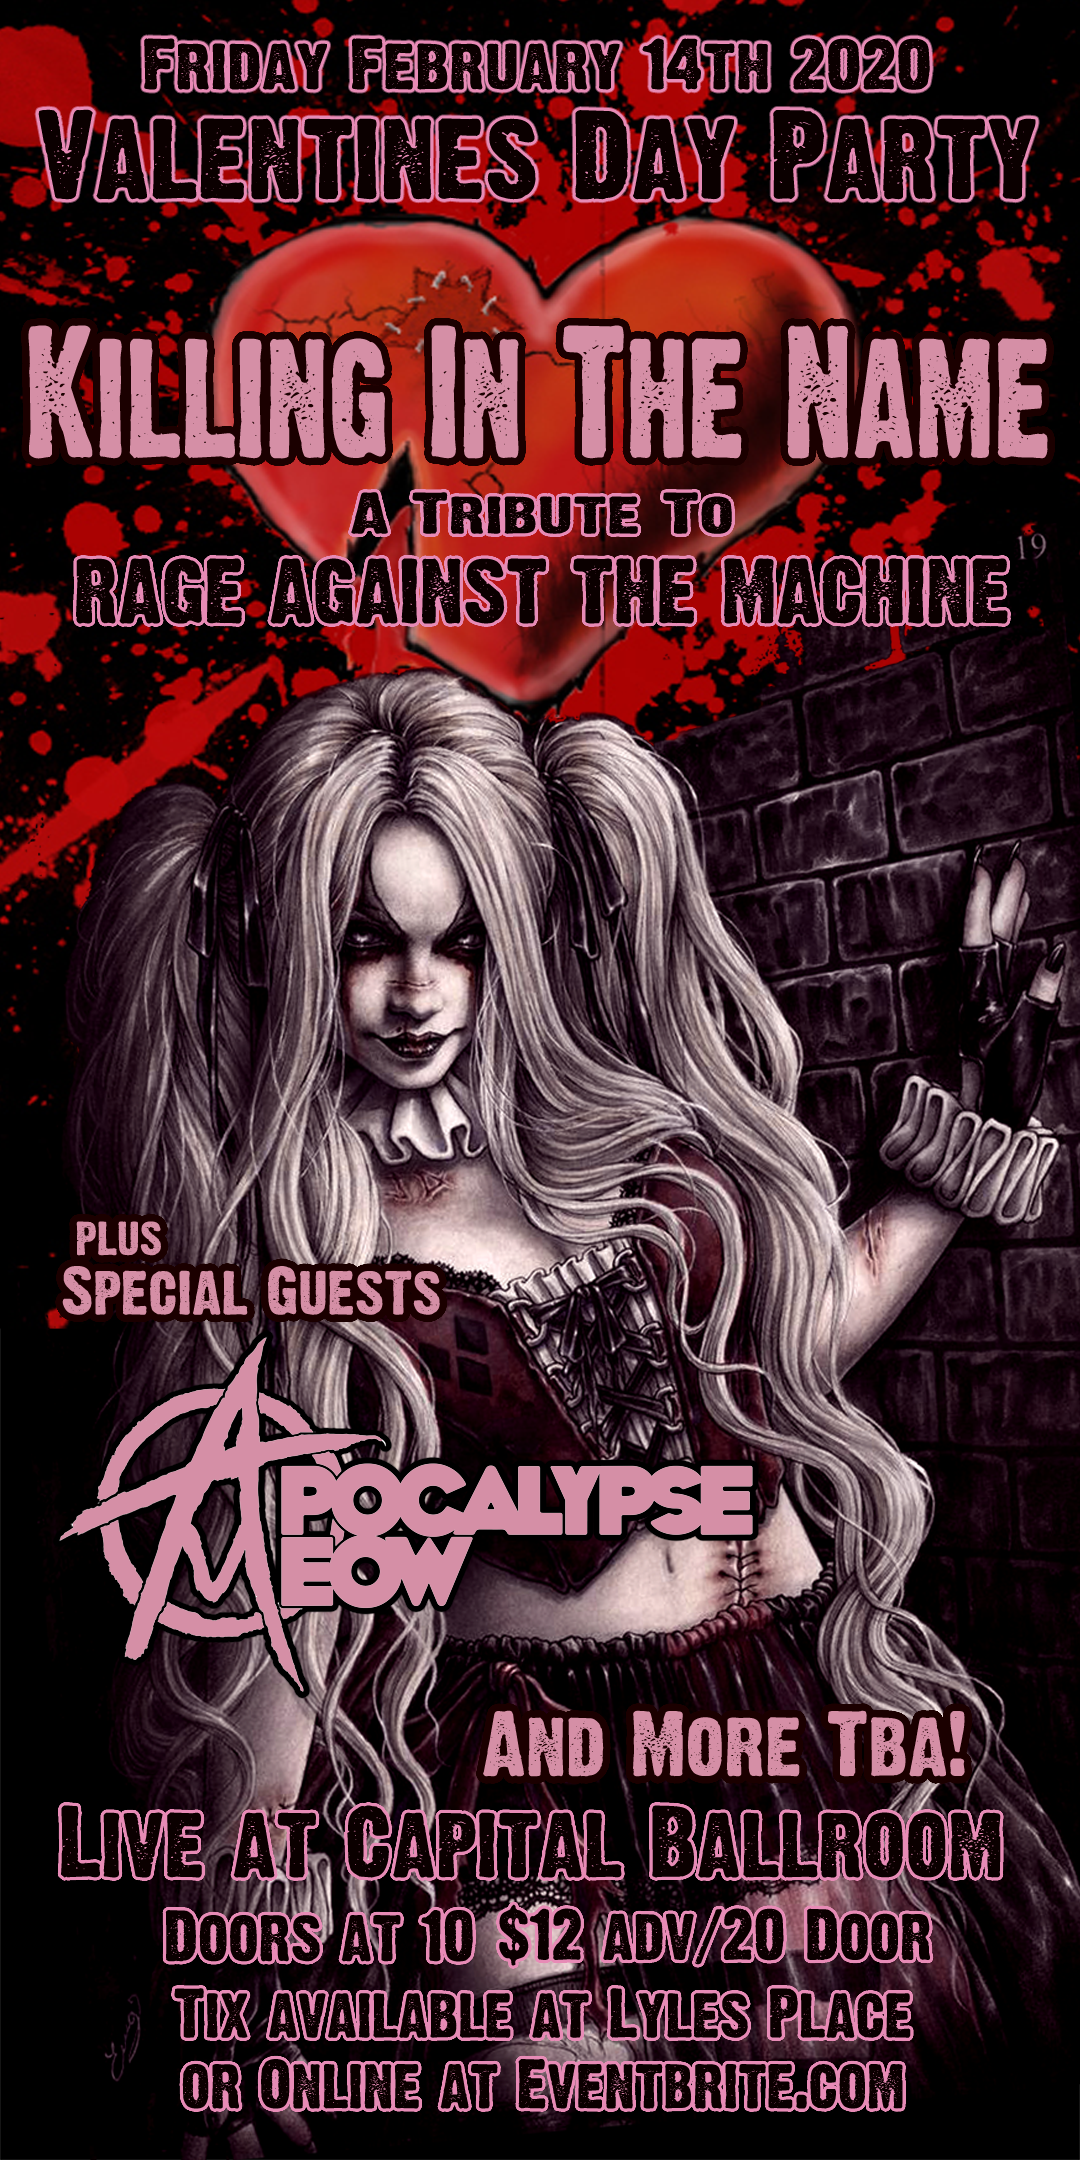 VALENTINES DAY w/ KILLING IN THE NAME OF A Rage Against the Machine Tribute